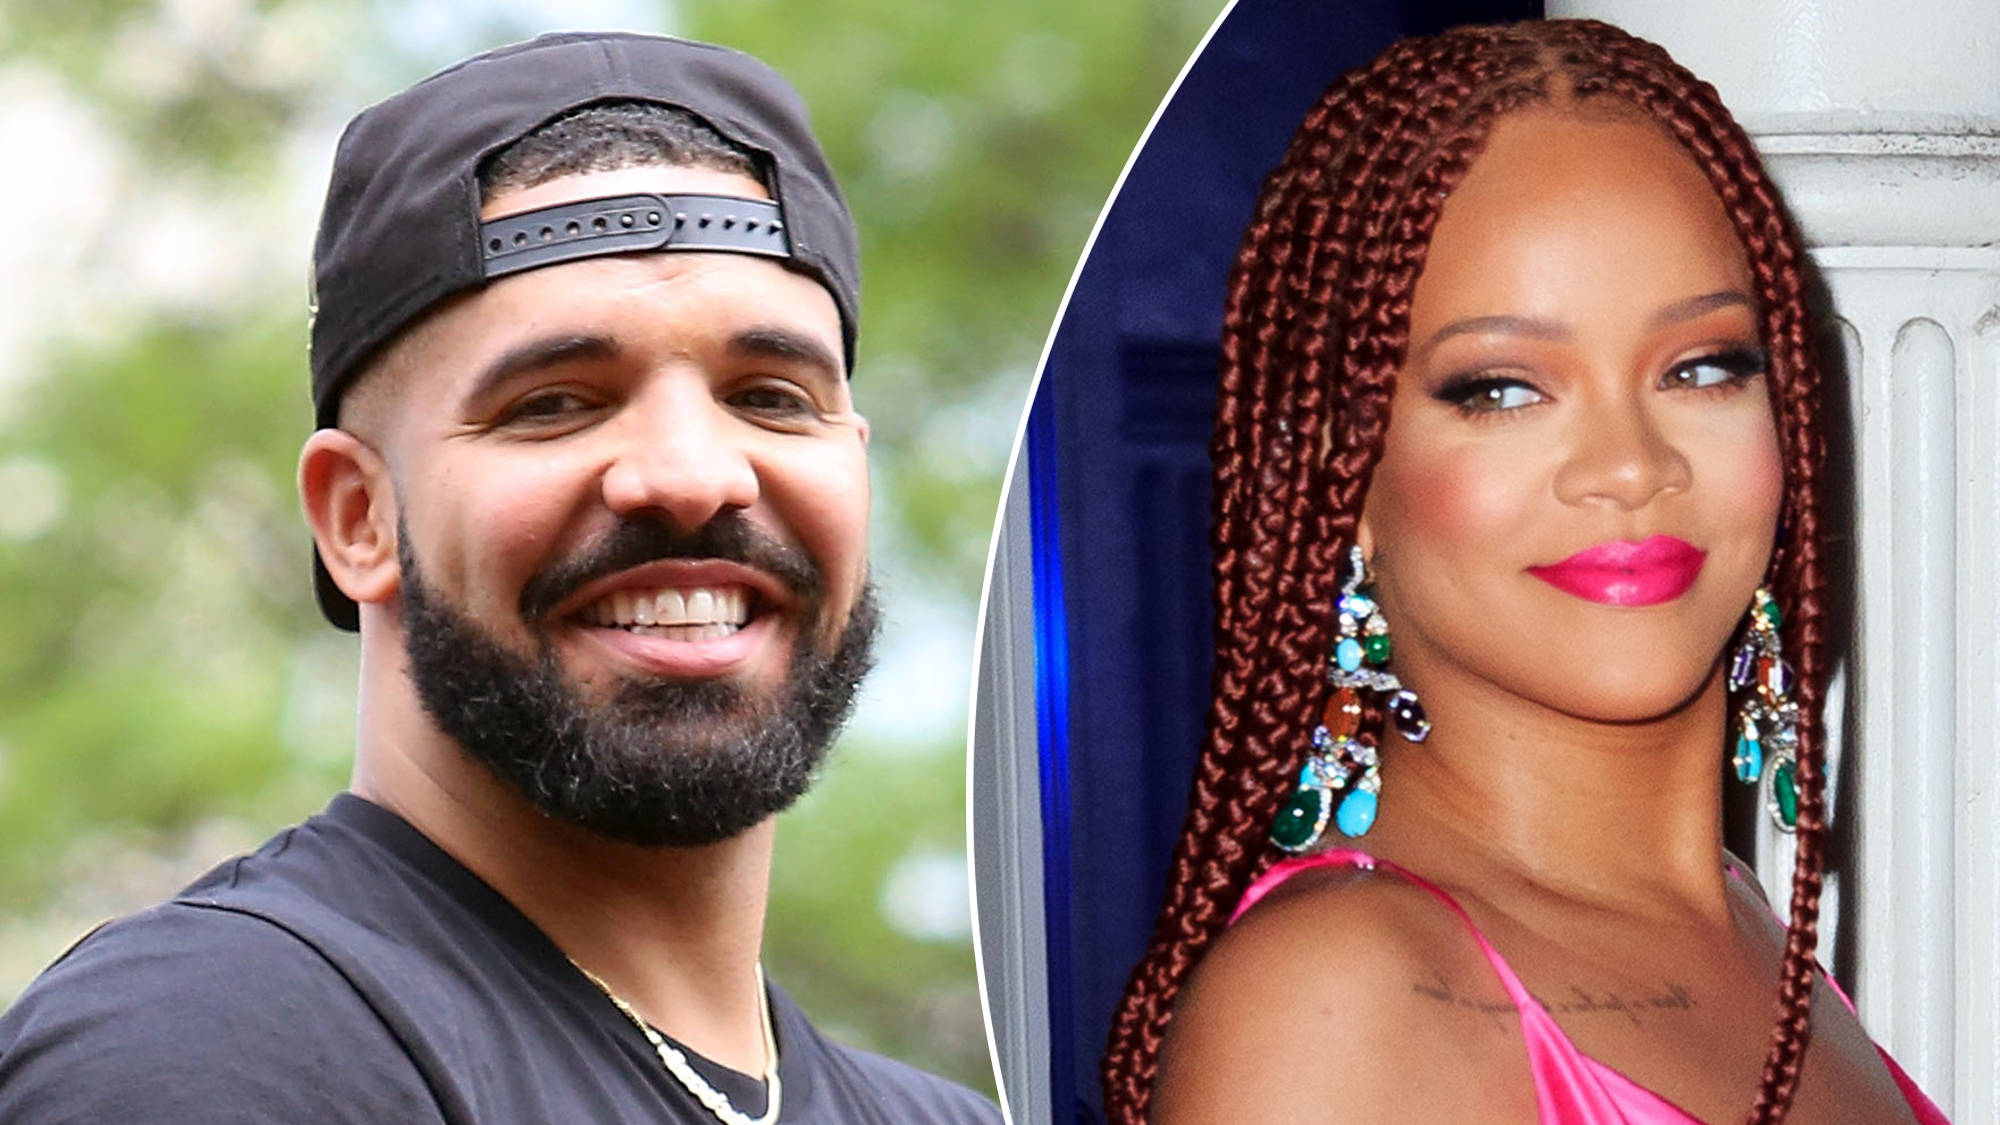 Drake 'Accidentally Reveals Rihanna Face Tattoo' In New Shirtless Instagram Pictures